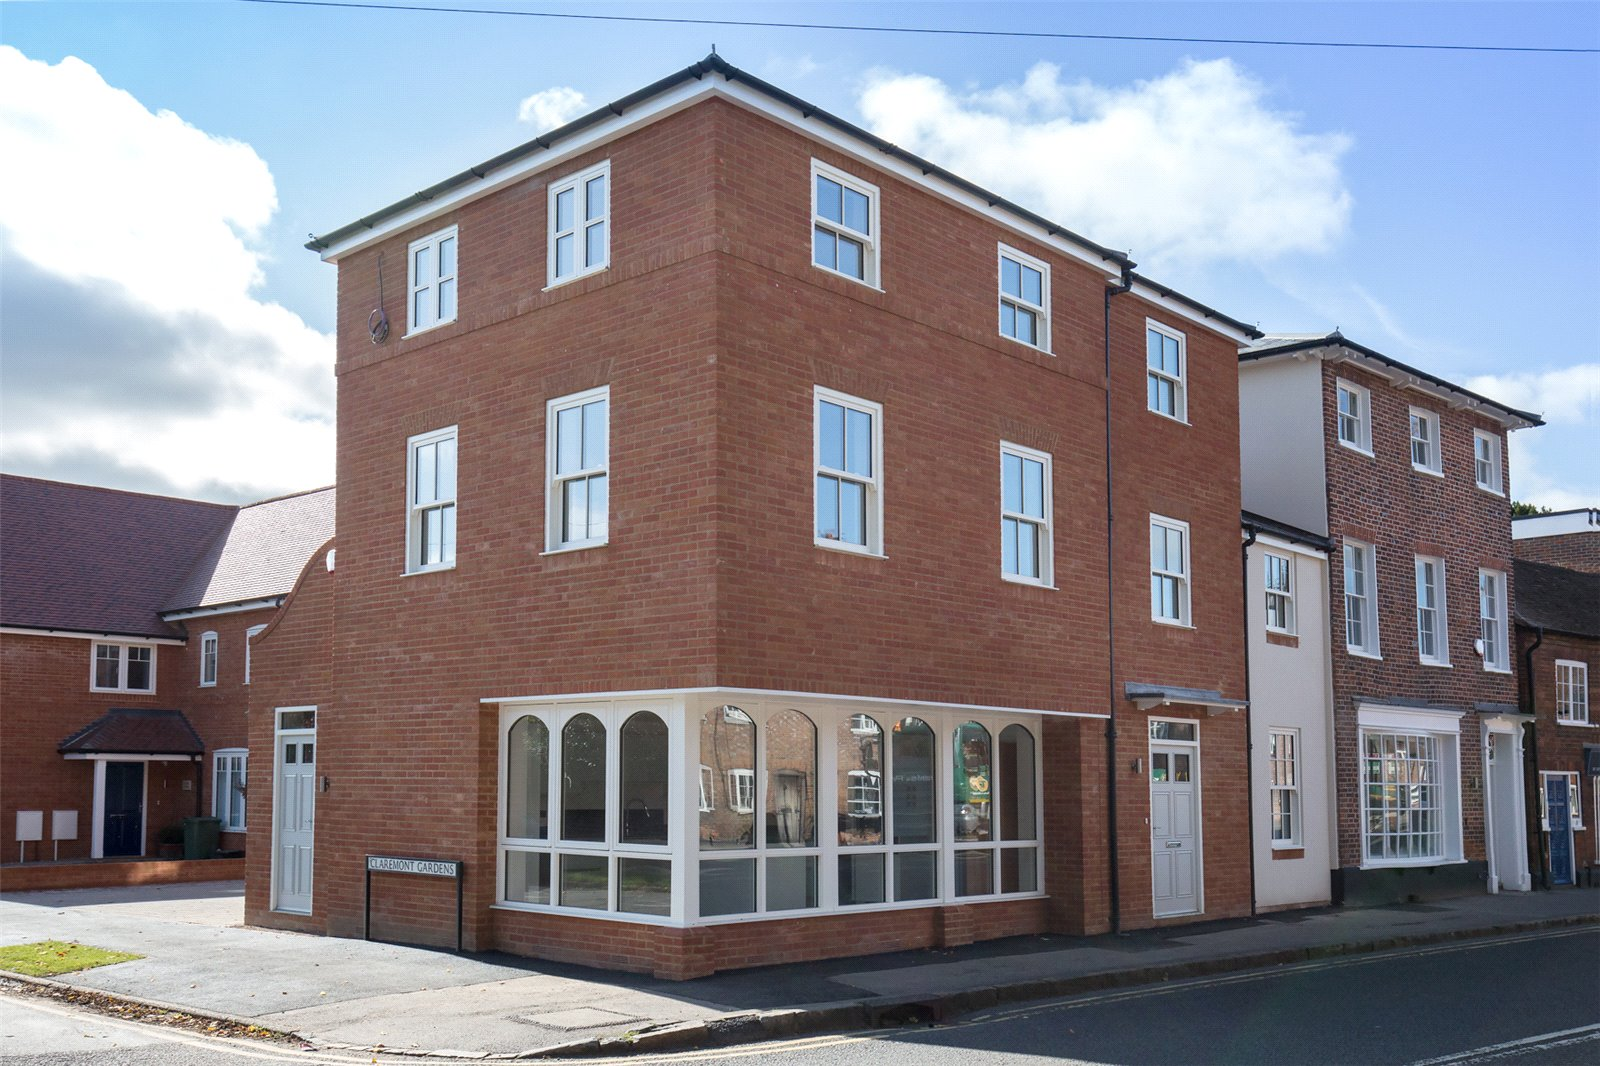 4 Bedrooms End Of Terrace House for sale in 52 Chapel Street, Marlow, Buckinghamshire, SL7